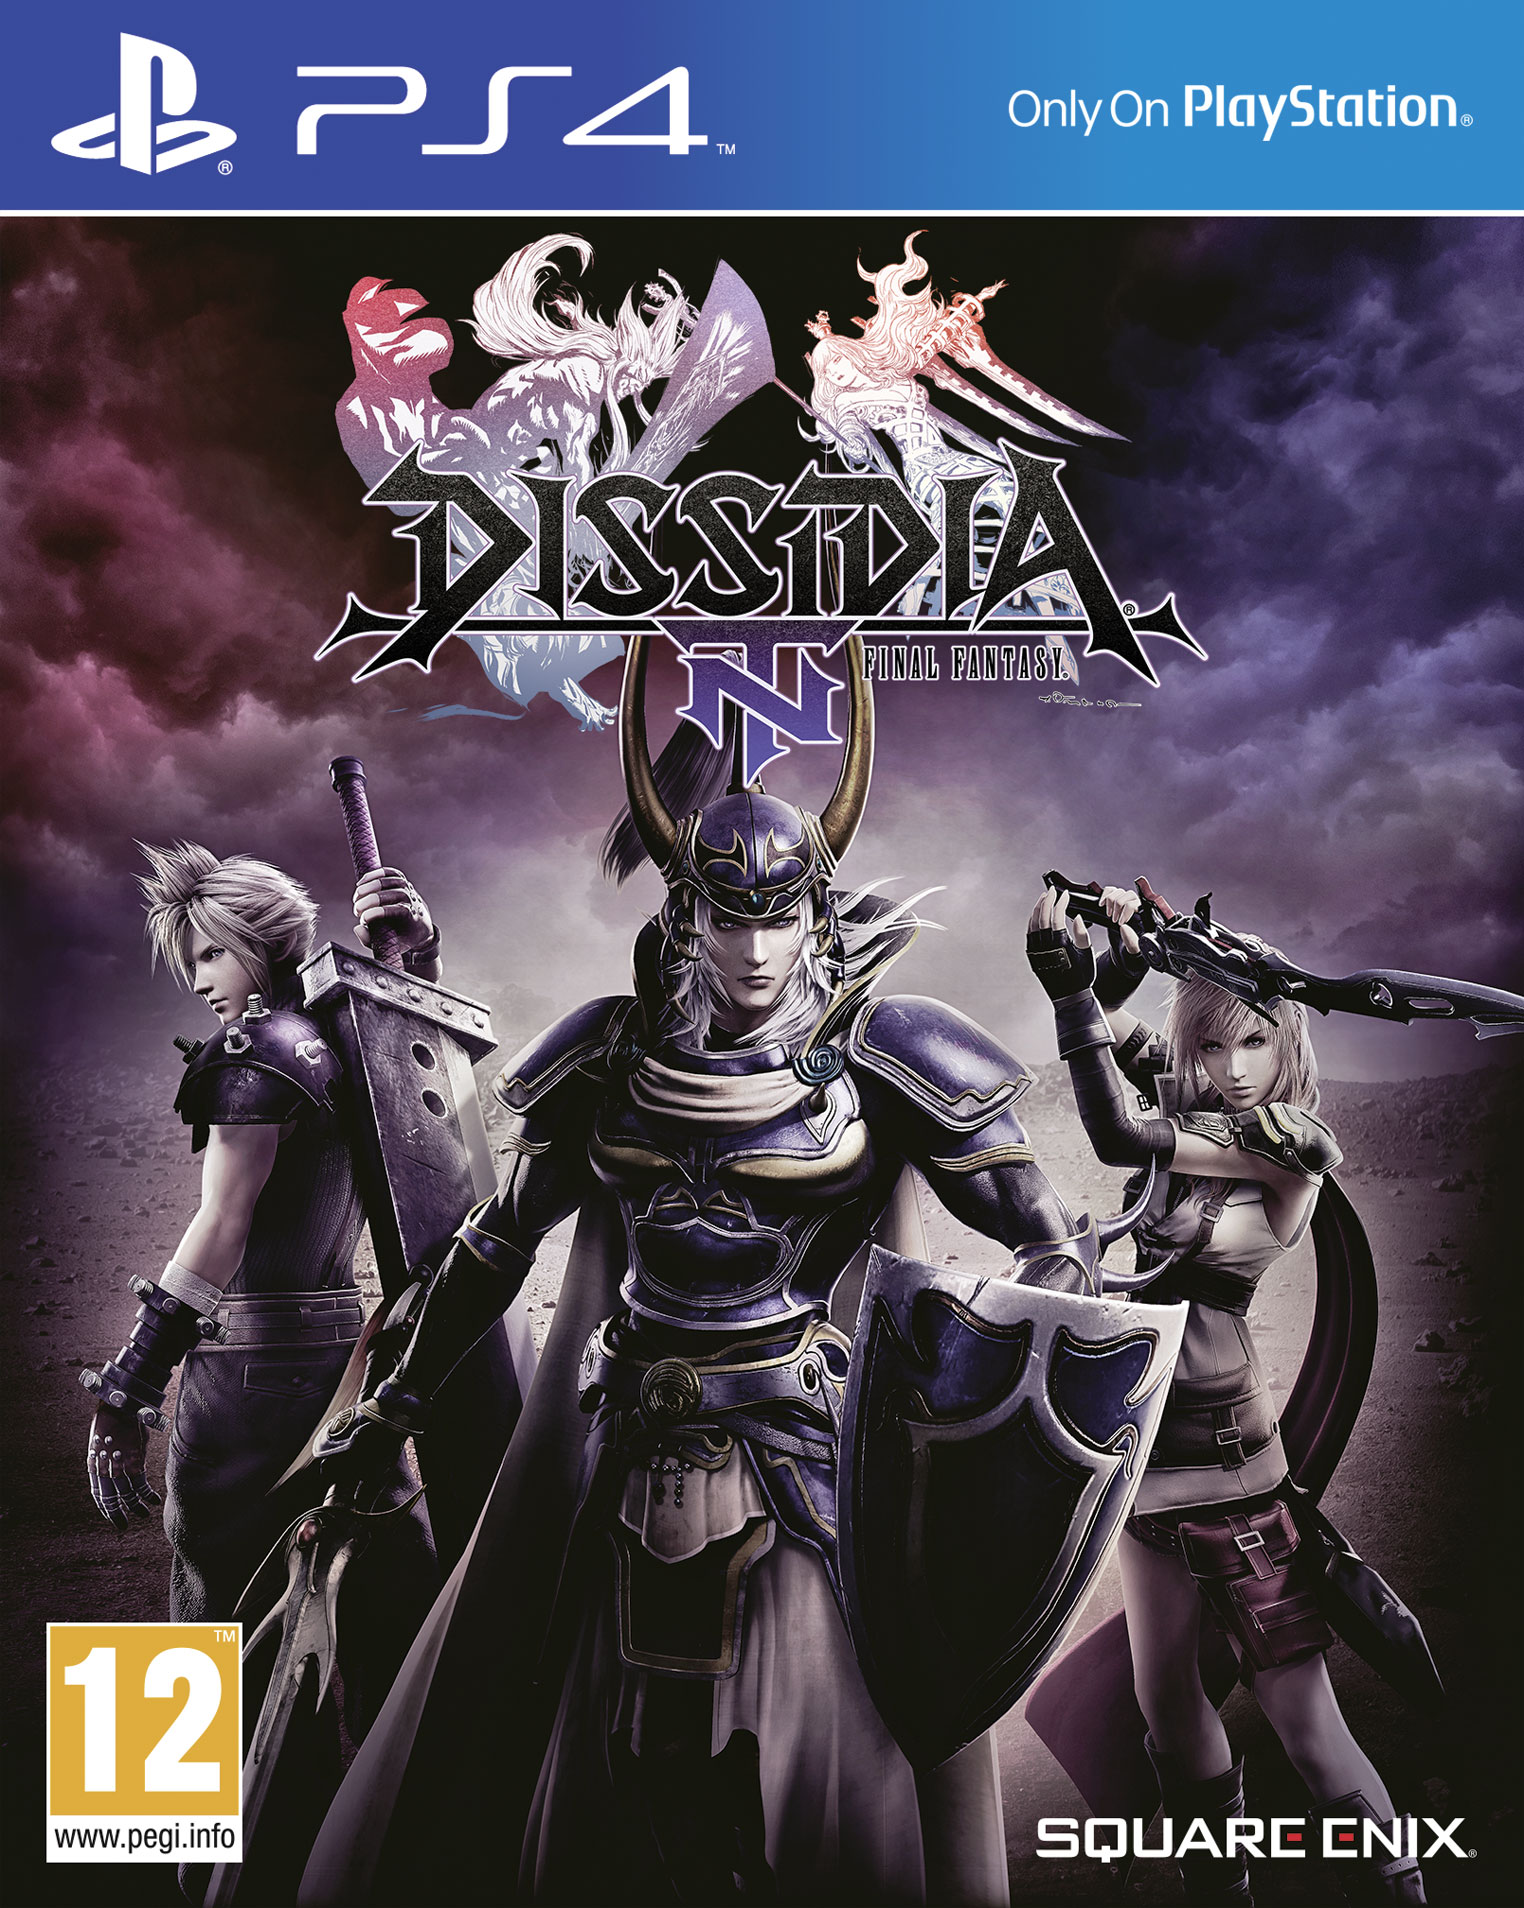 Dissidia Final Fantasy NT (Steelbook) - PlayStation 4 Játékok